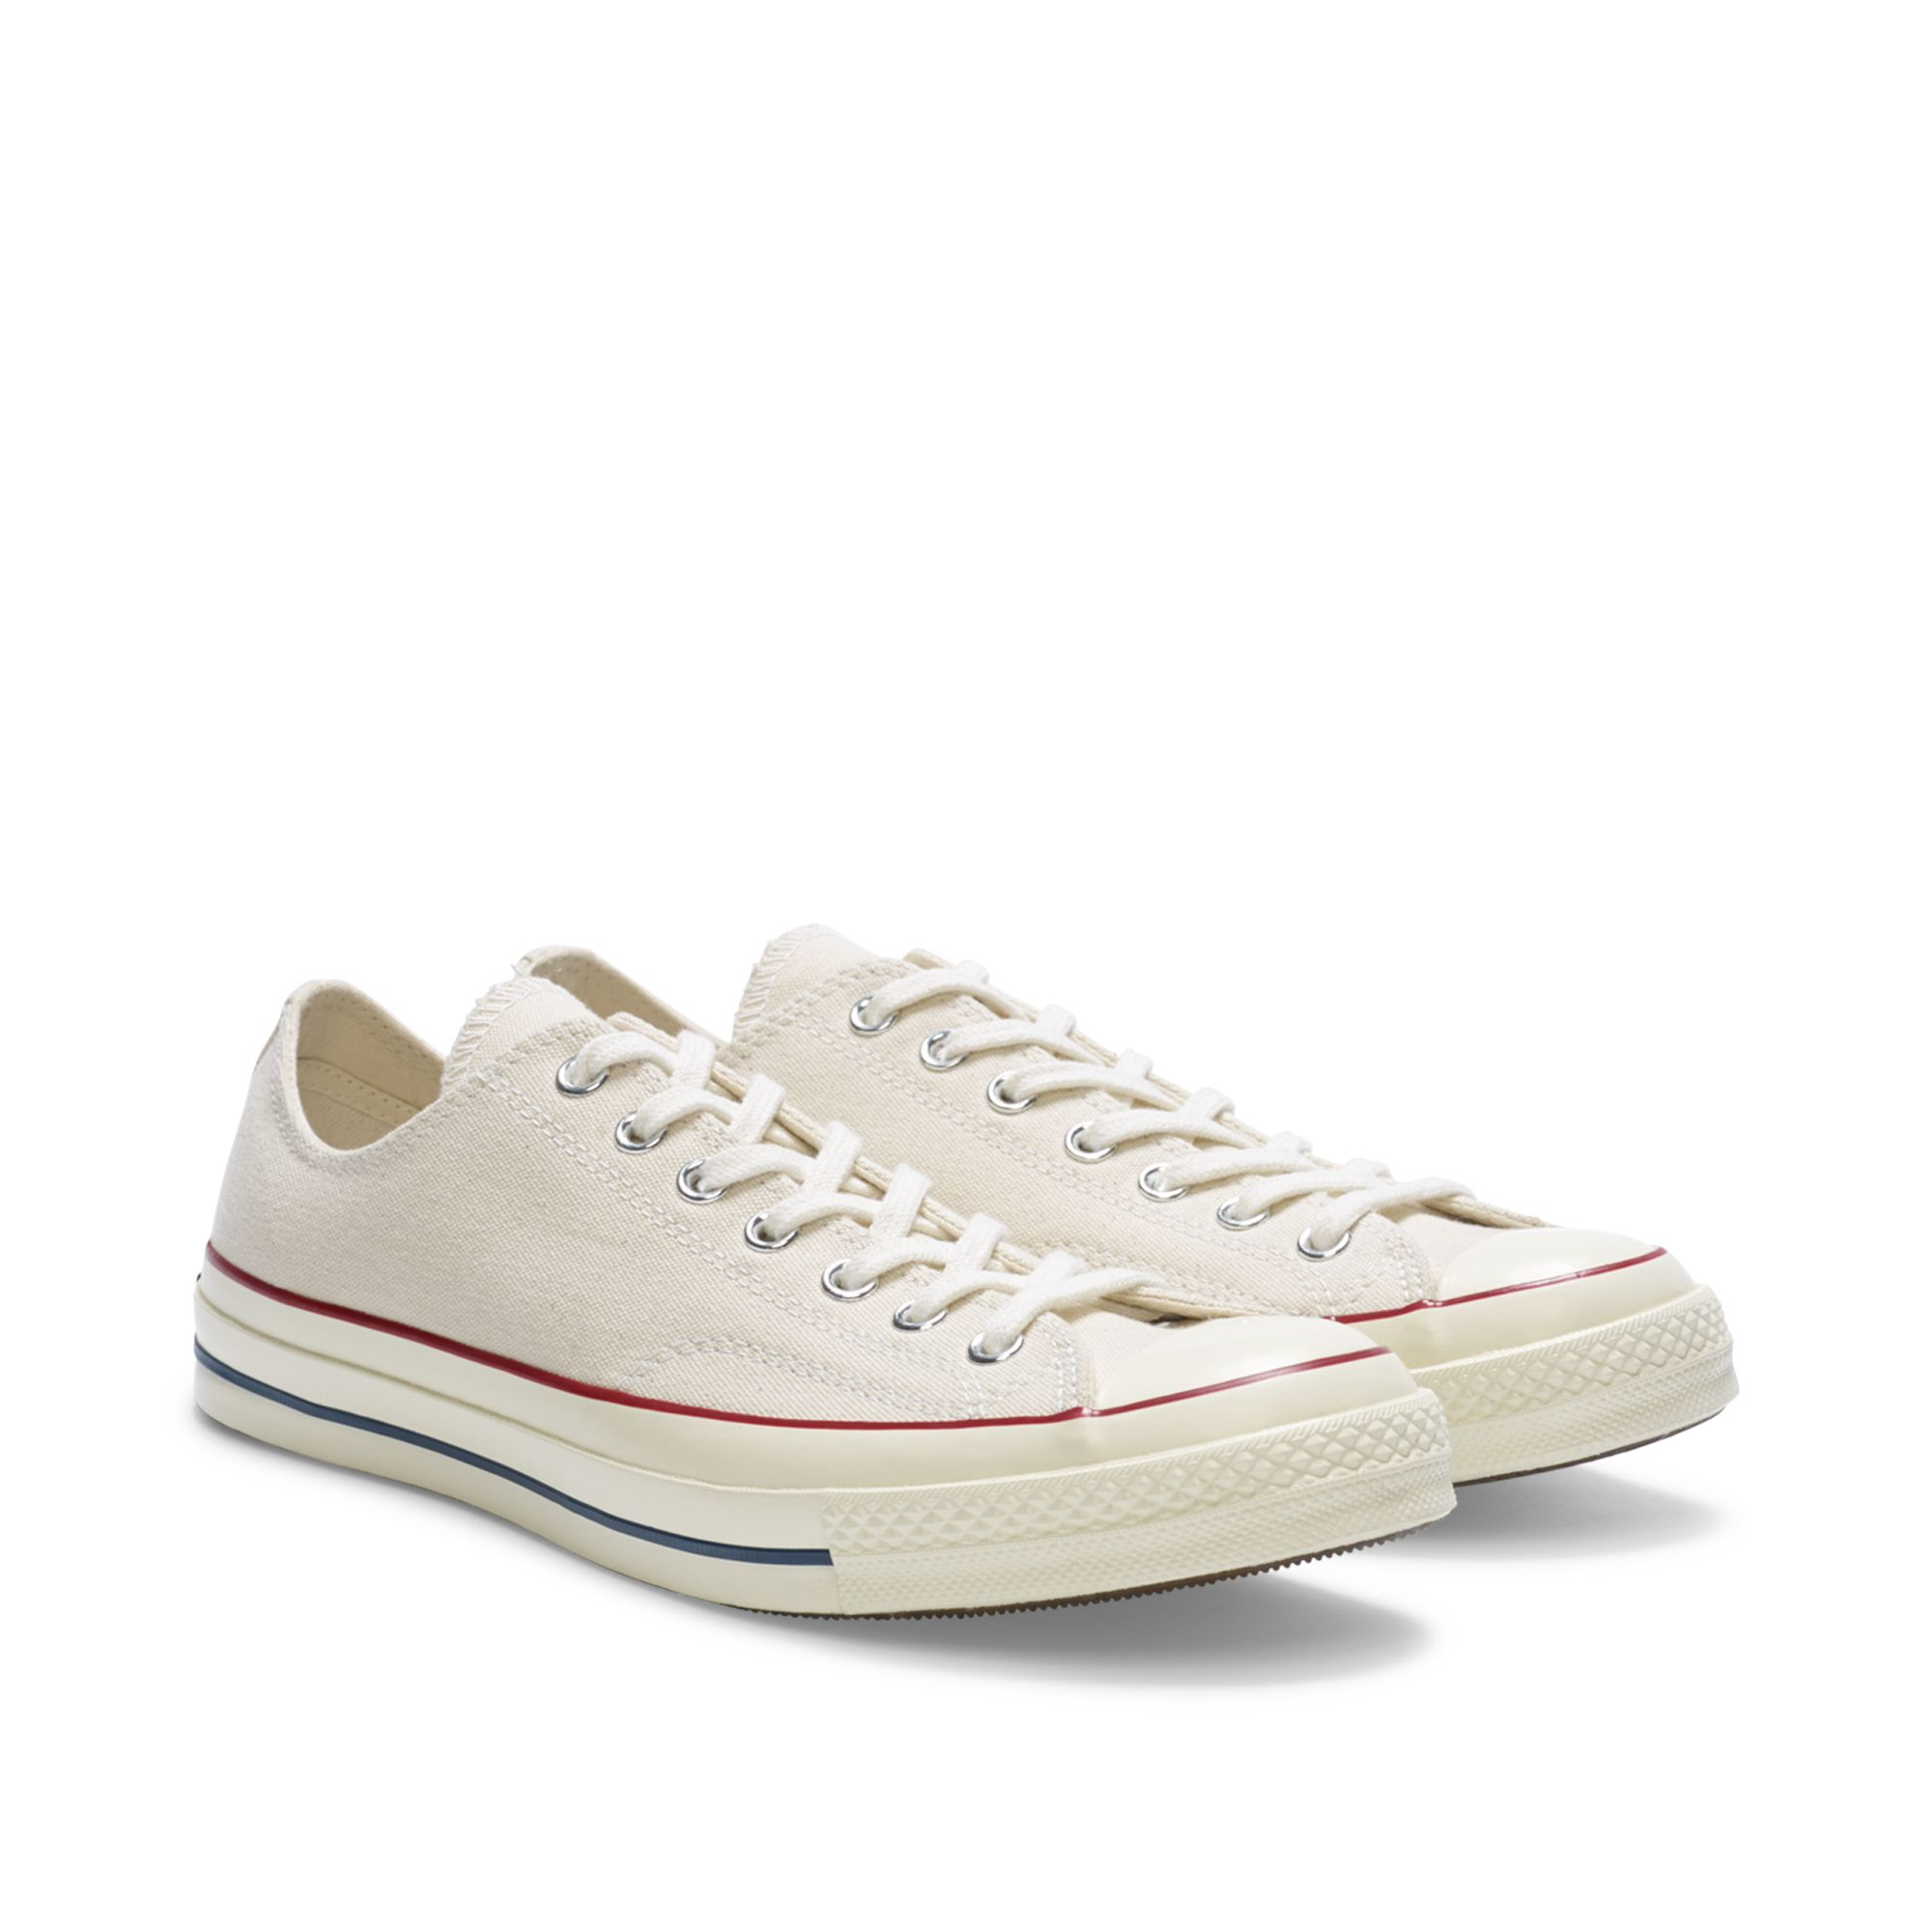 4c3f342c6f4 Lyst - Club Monaco Converse 70s Chuck Taylor Low in Red for Men